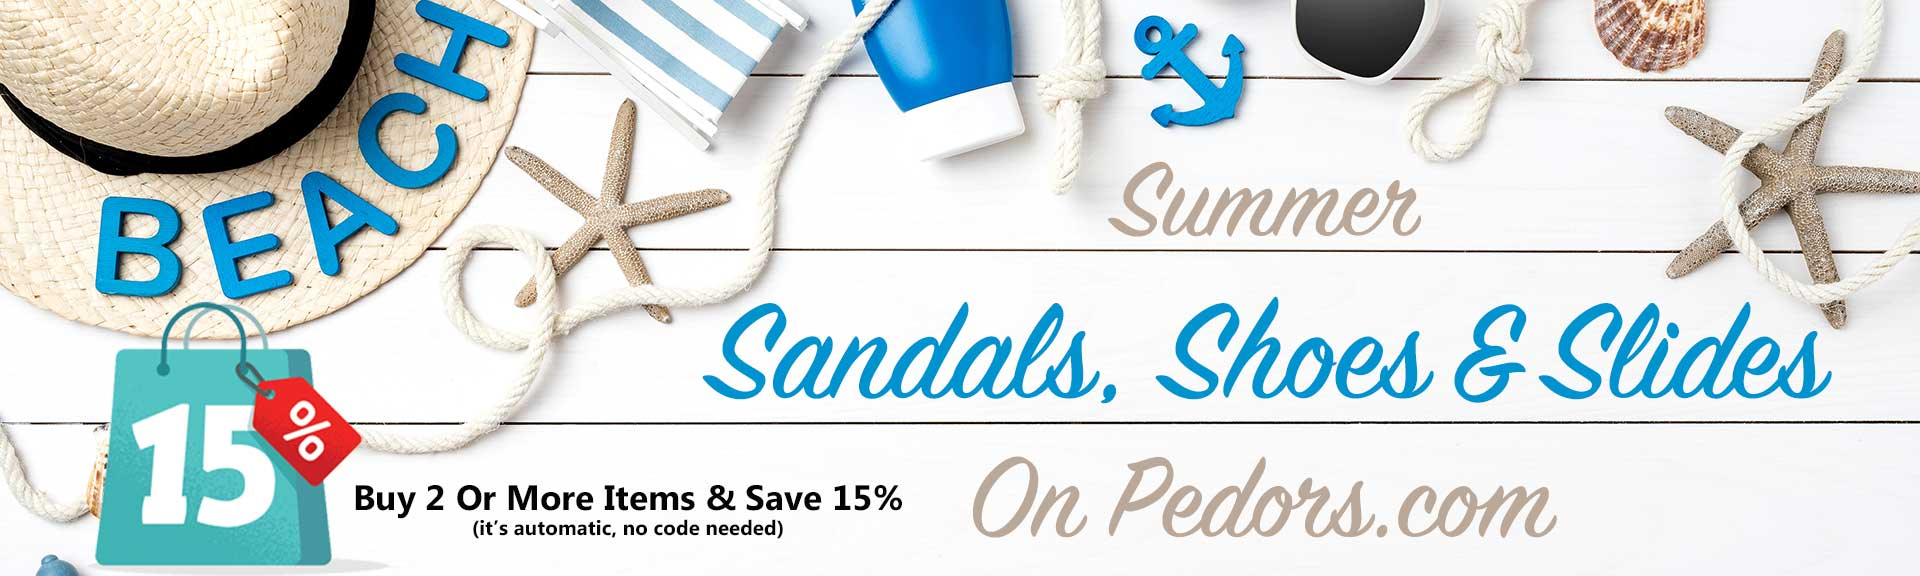 The Summer Section Of Shoes, Sandals & Slides on Pedors.com